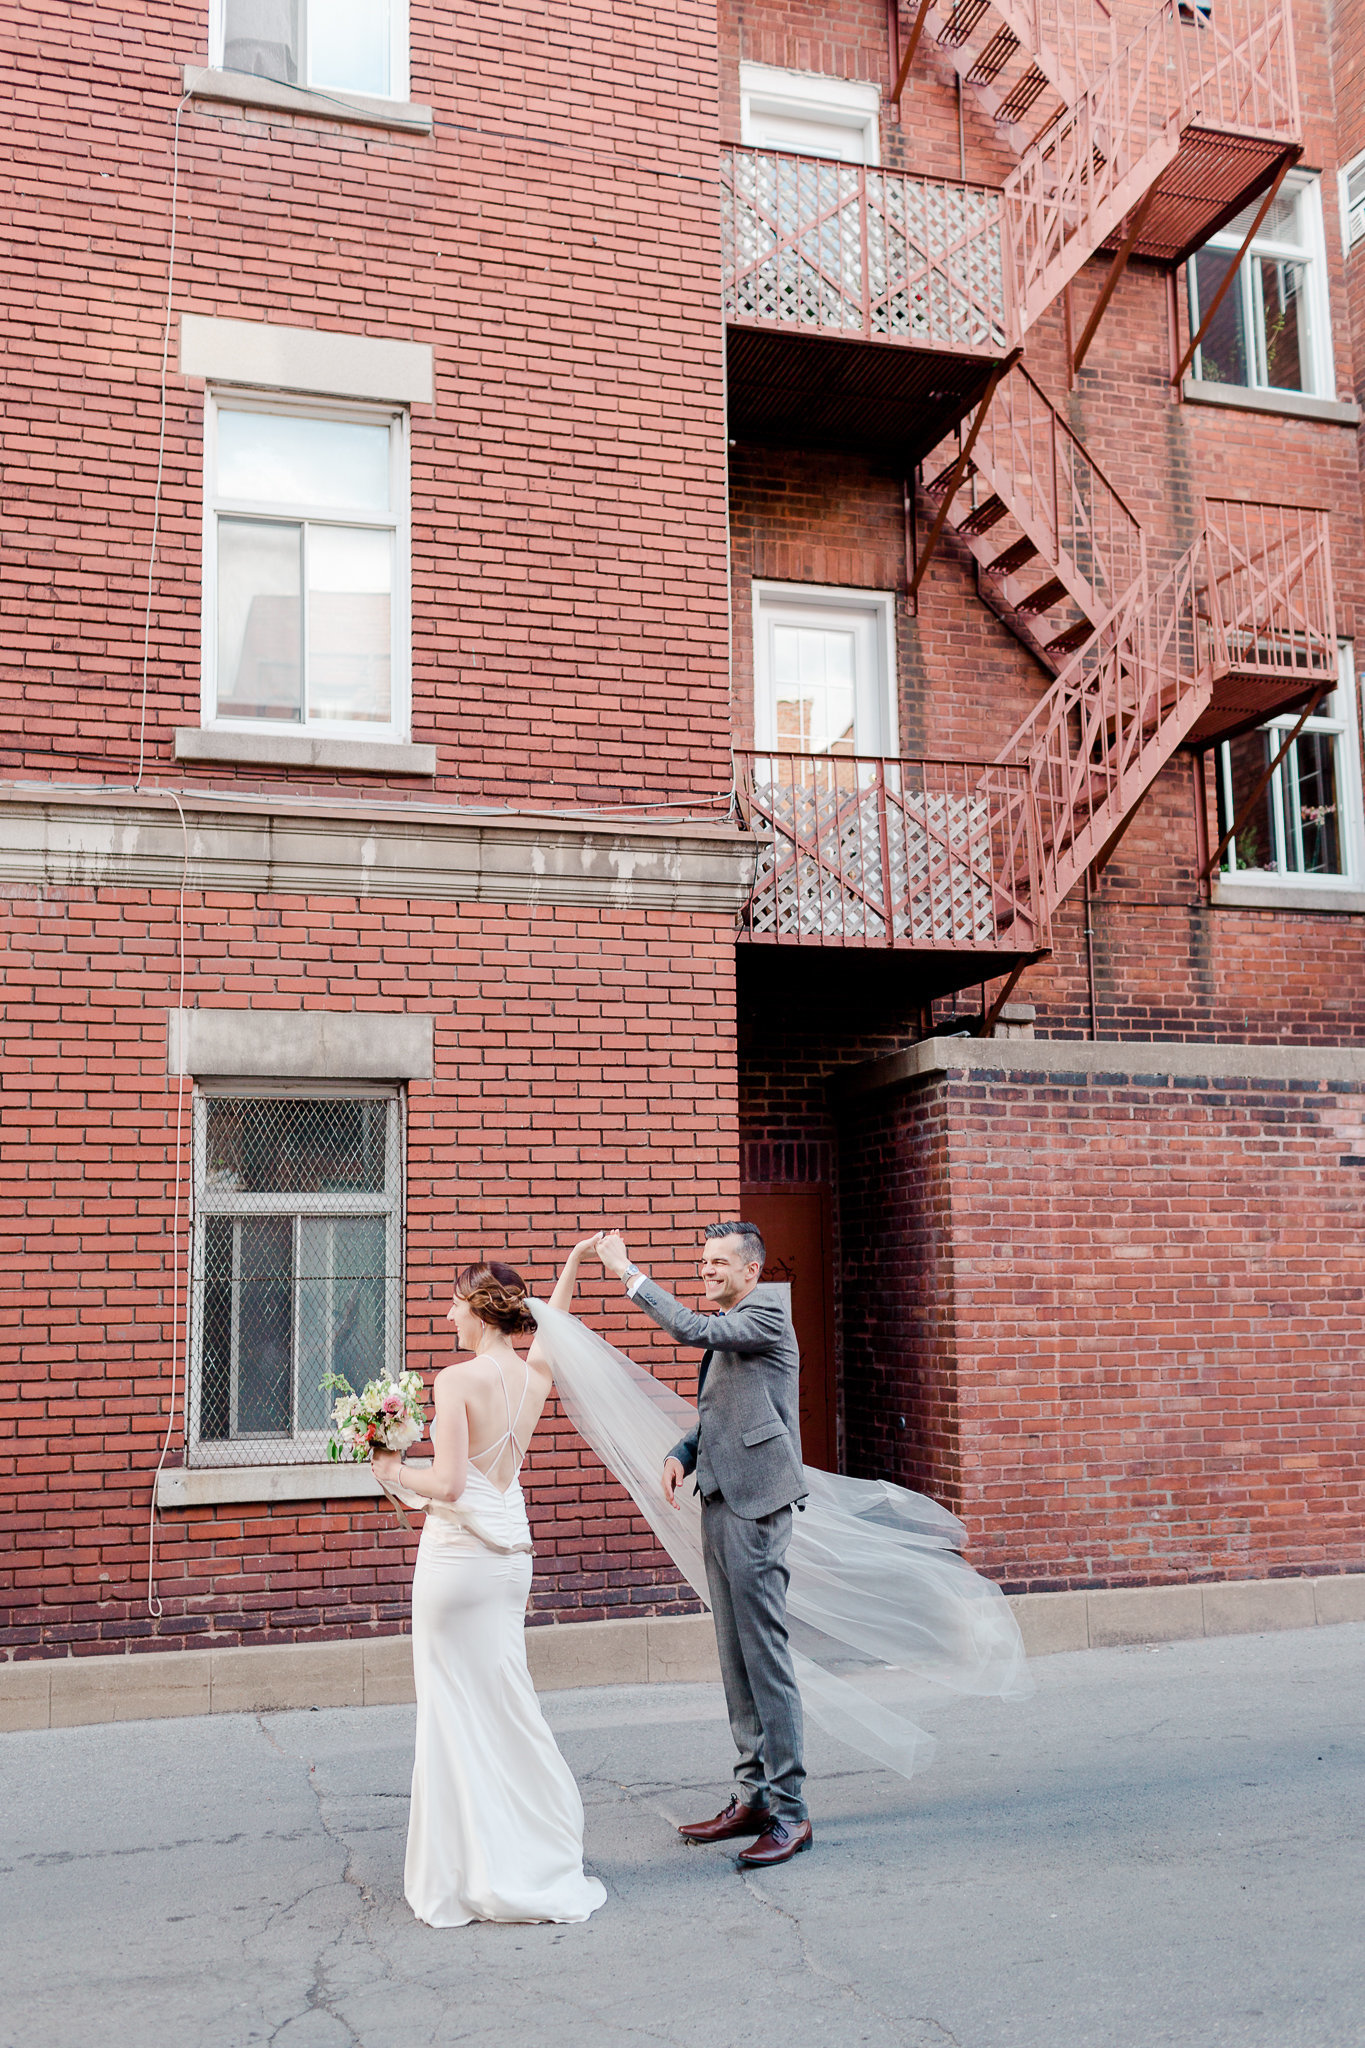 photographe-mariage-soupesoup-lisa-renault-photographie-montreal-wedding-photographer-80